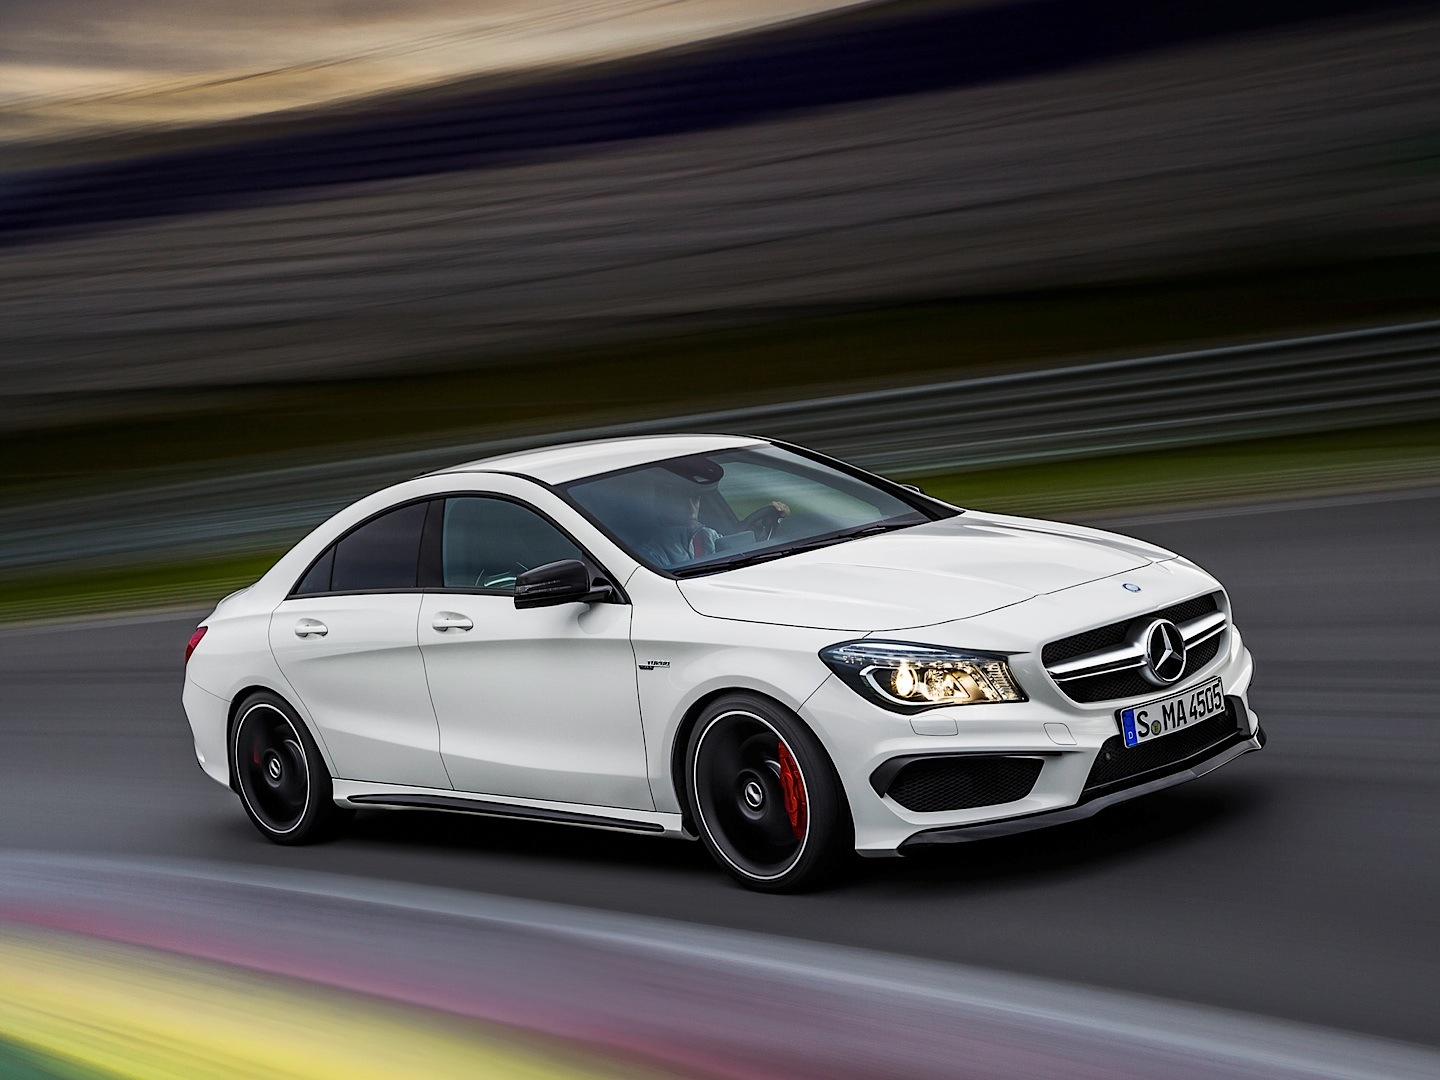 Mercedes benz cla 45 amg driven by vadimauto autoevolution for Mercedes benz glk amg